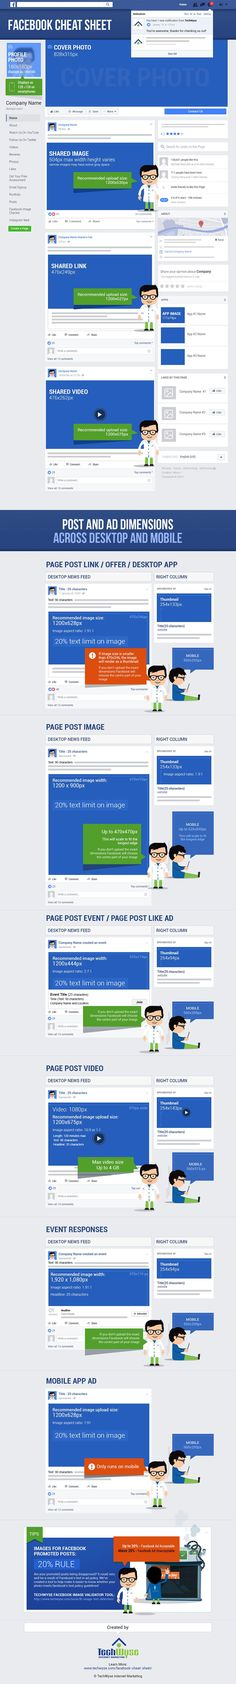 Facebook Cheat Sheet #Infographic #Facebook #SocialMedia